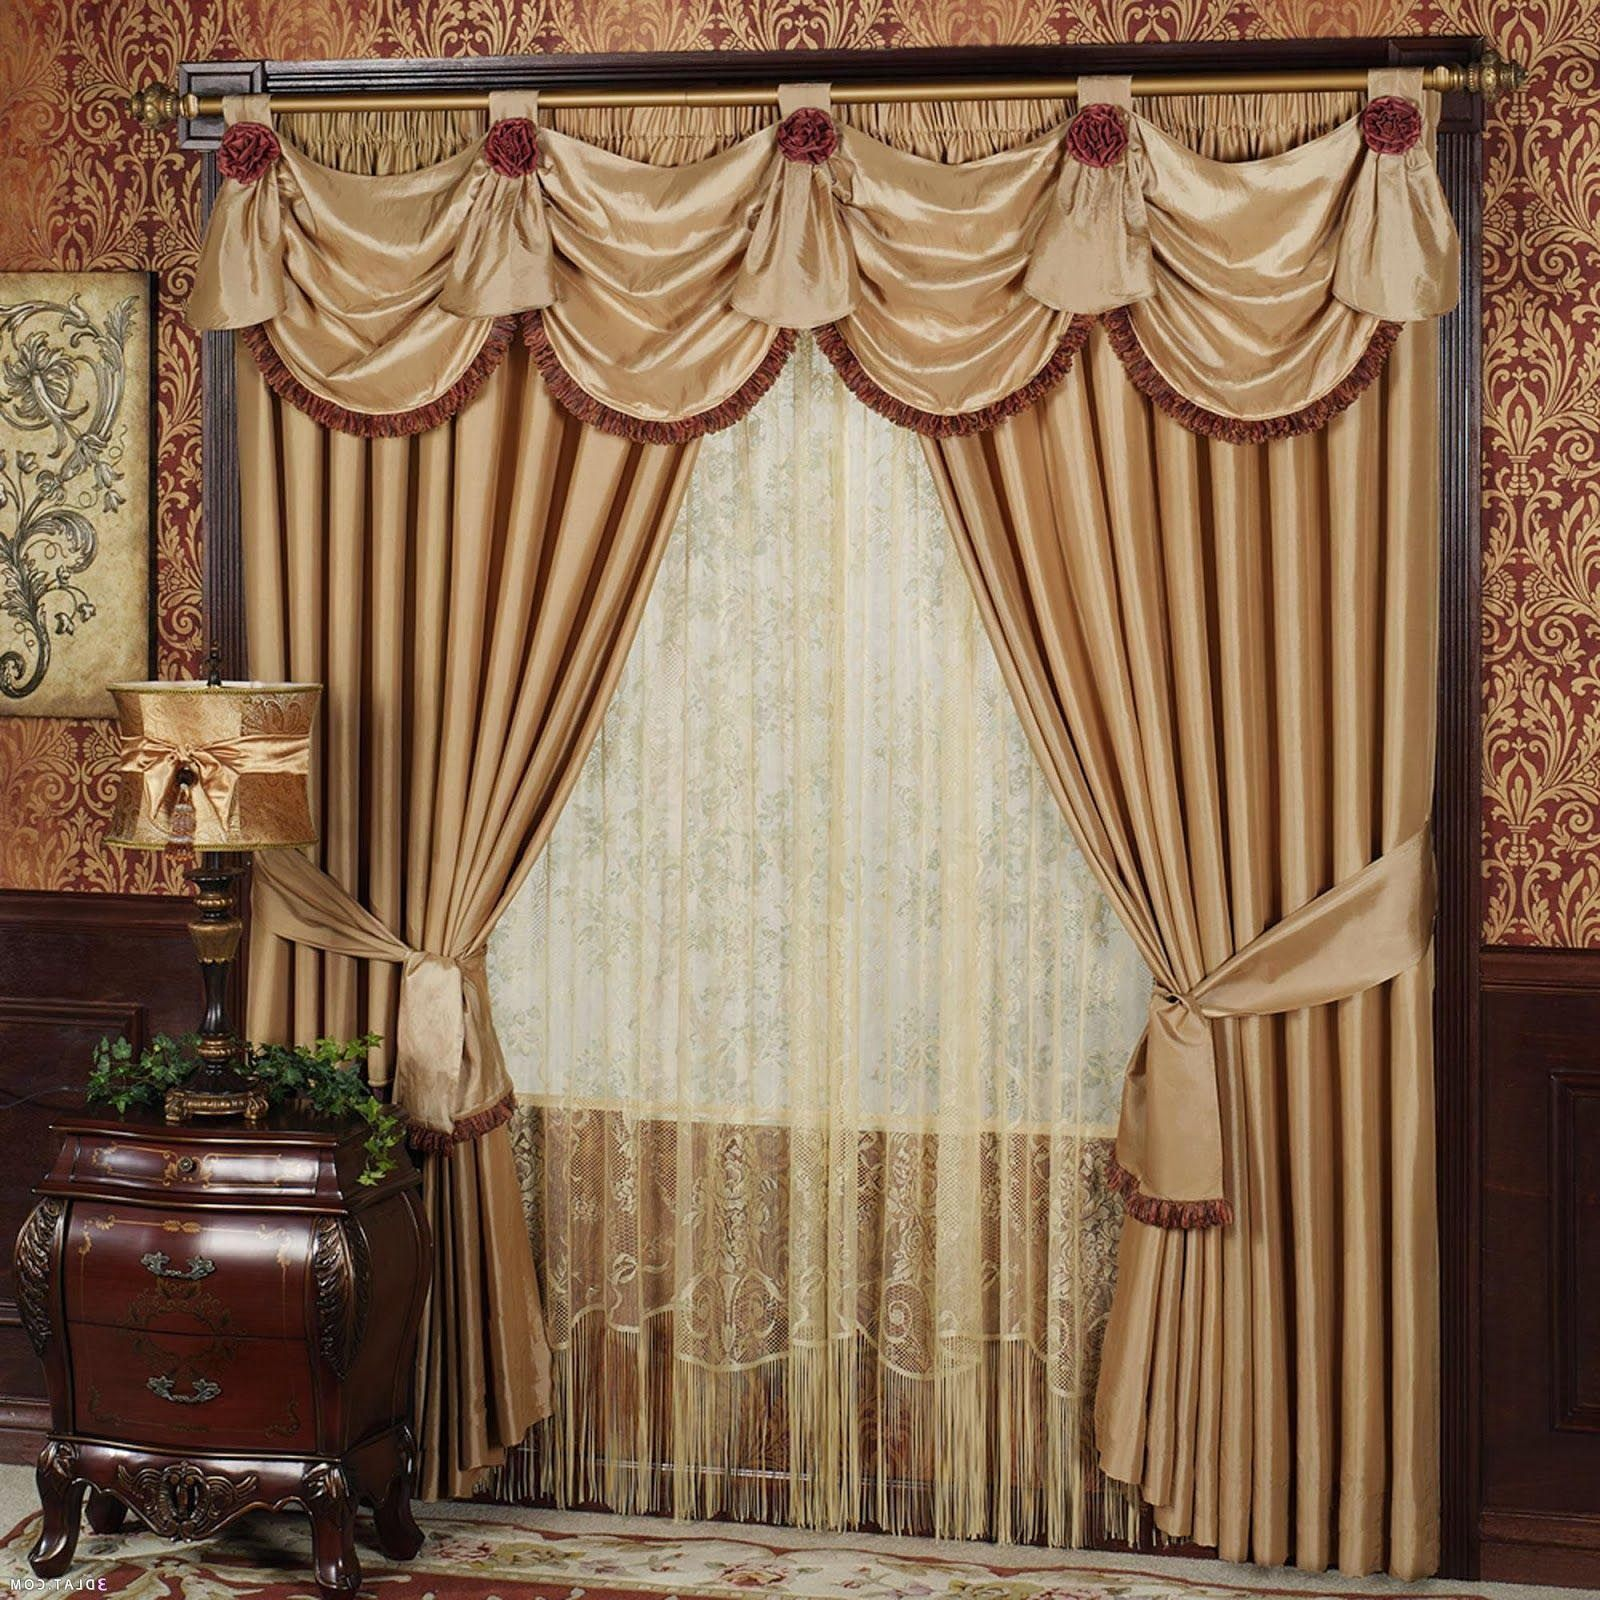 Living Room Curtain Design Best Living Room Drapes With Valances  Valances  Pinterest  Valance Design Ideas